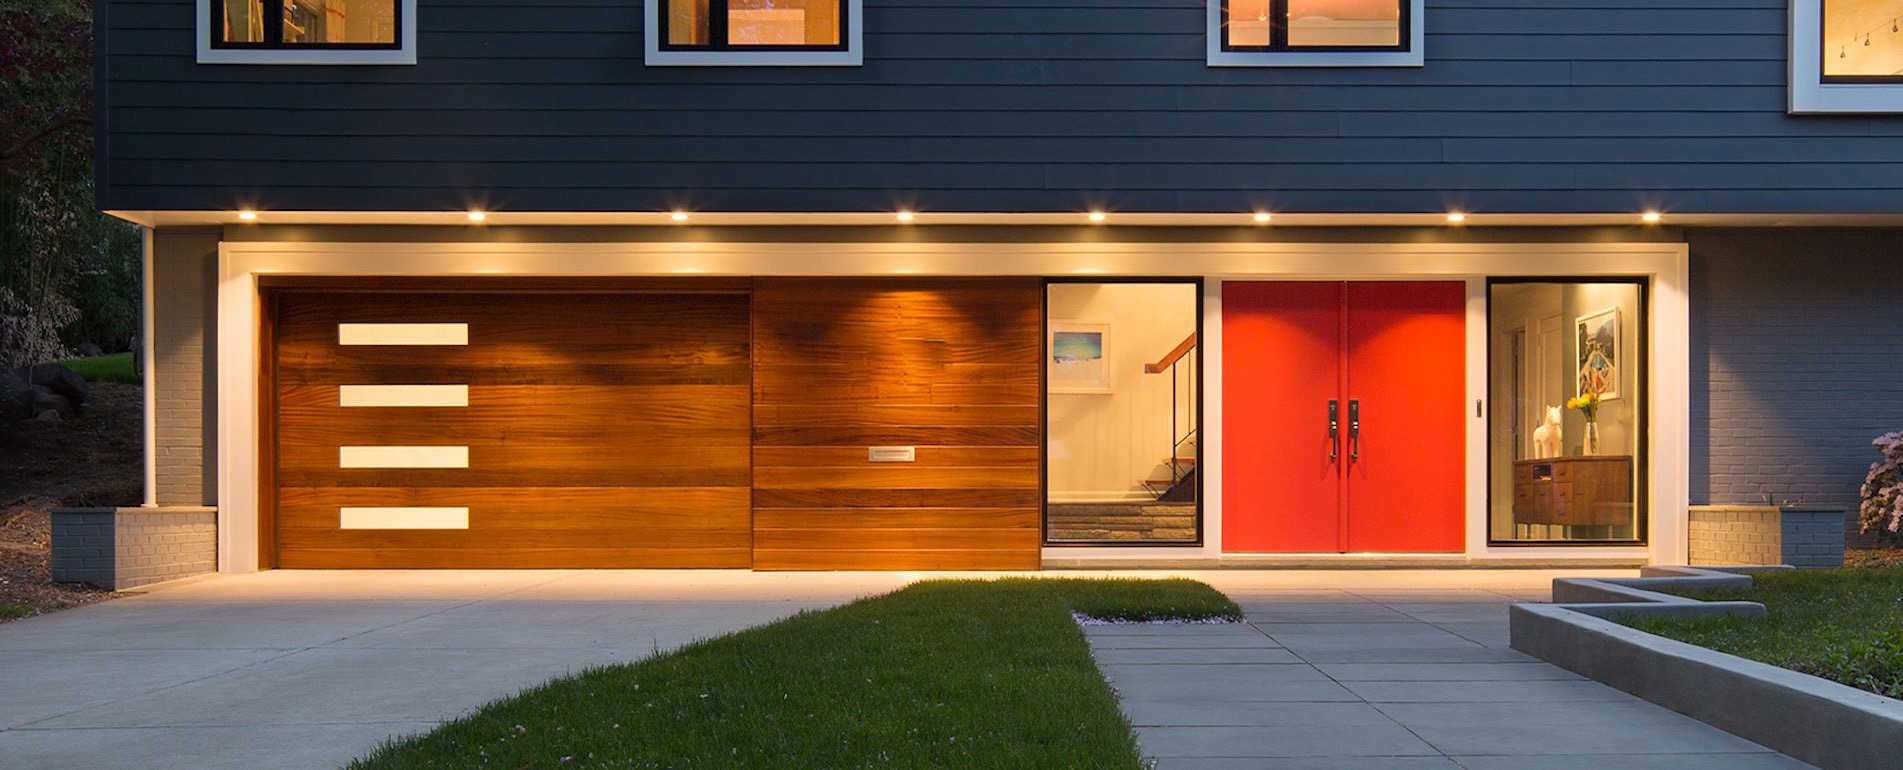 Wooden Single Car Garage Door In Contemporary Design (Image 38 of 38)